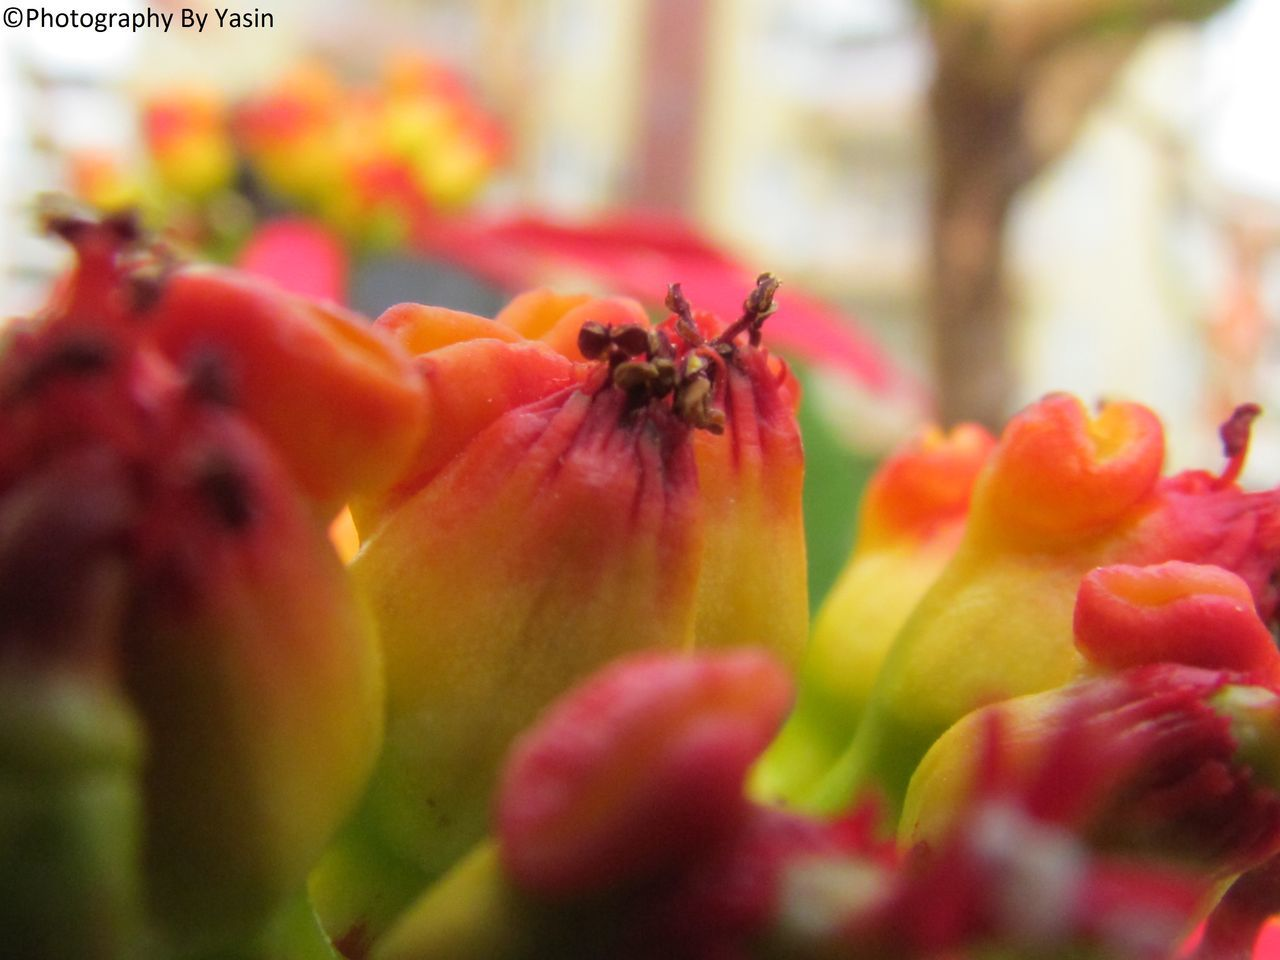 flower, petal, nature, fragility, flower head, freshness, close-up, selective focus, beauty in nature, growth, no people, plant, red, outdoors, day, blooming